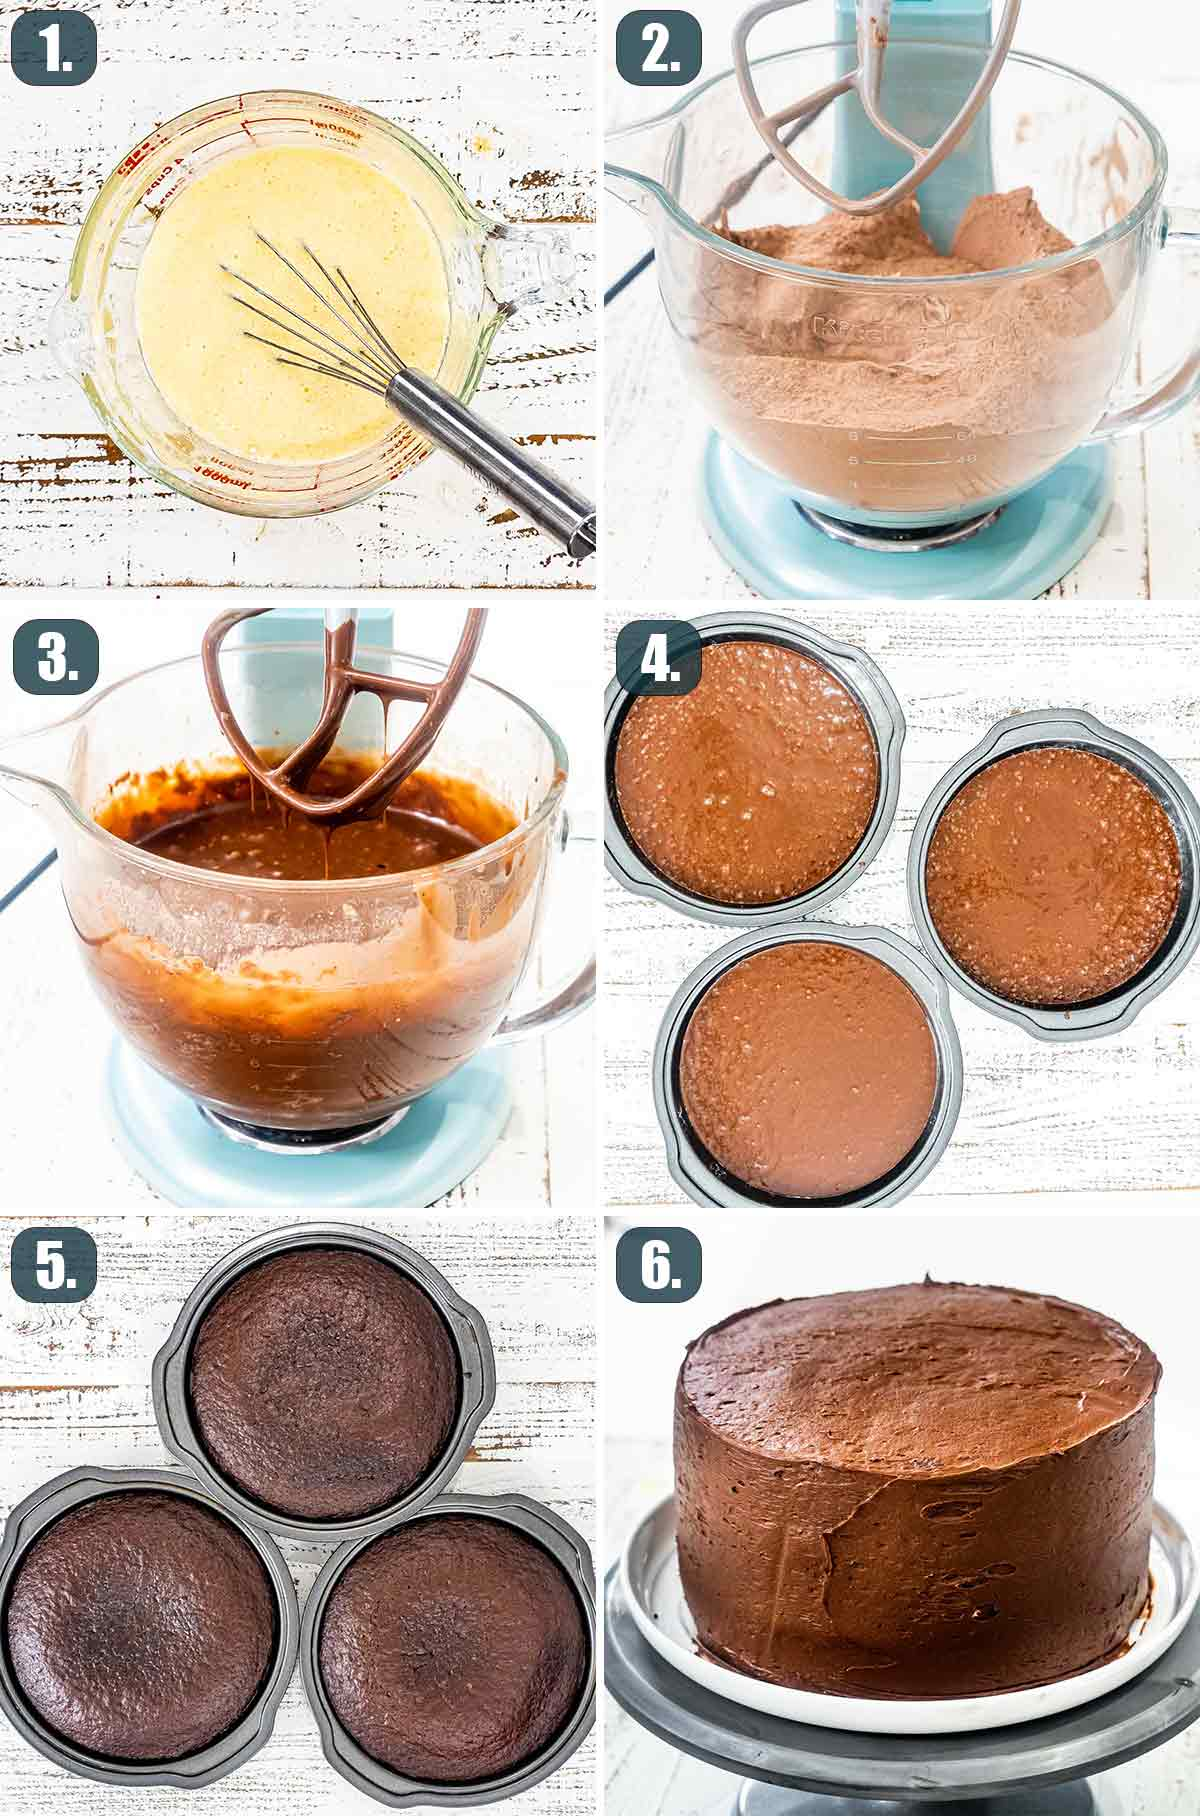 detailed process shots showing how to make chocolate cake.